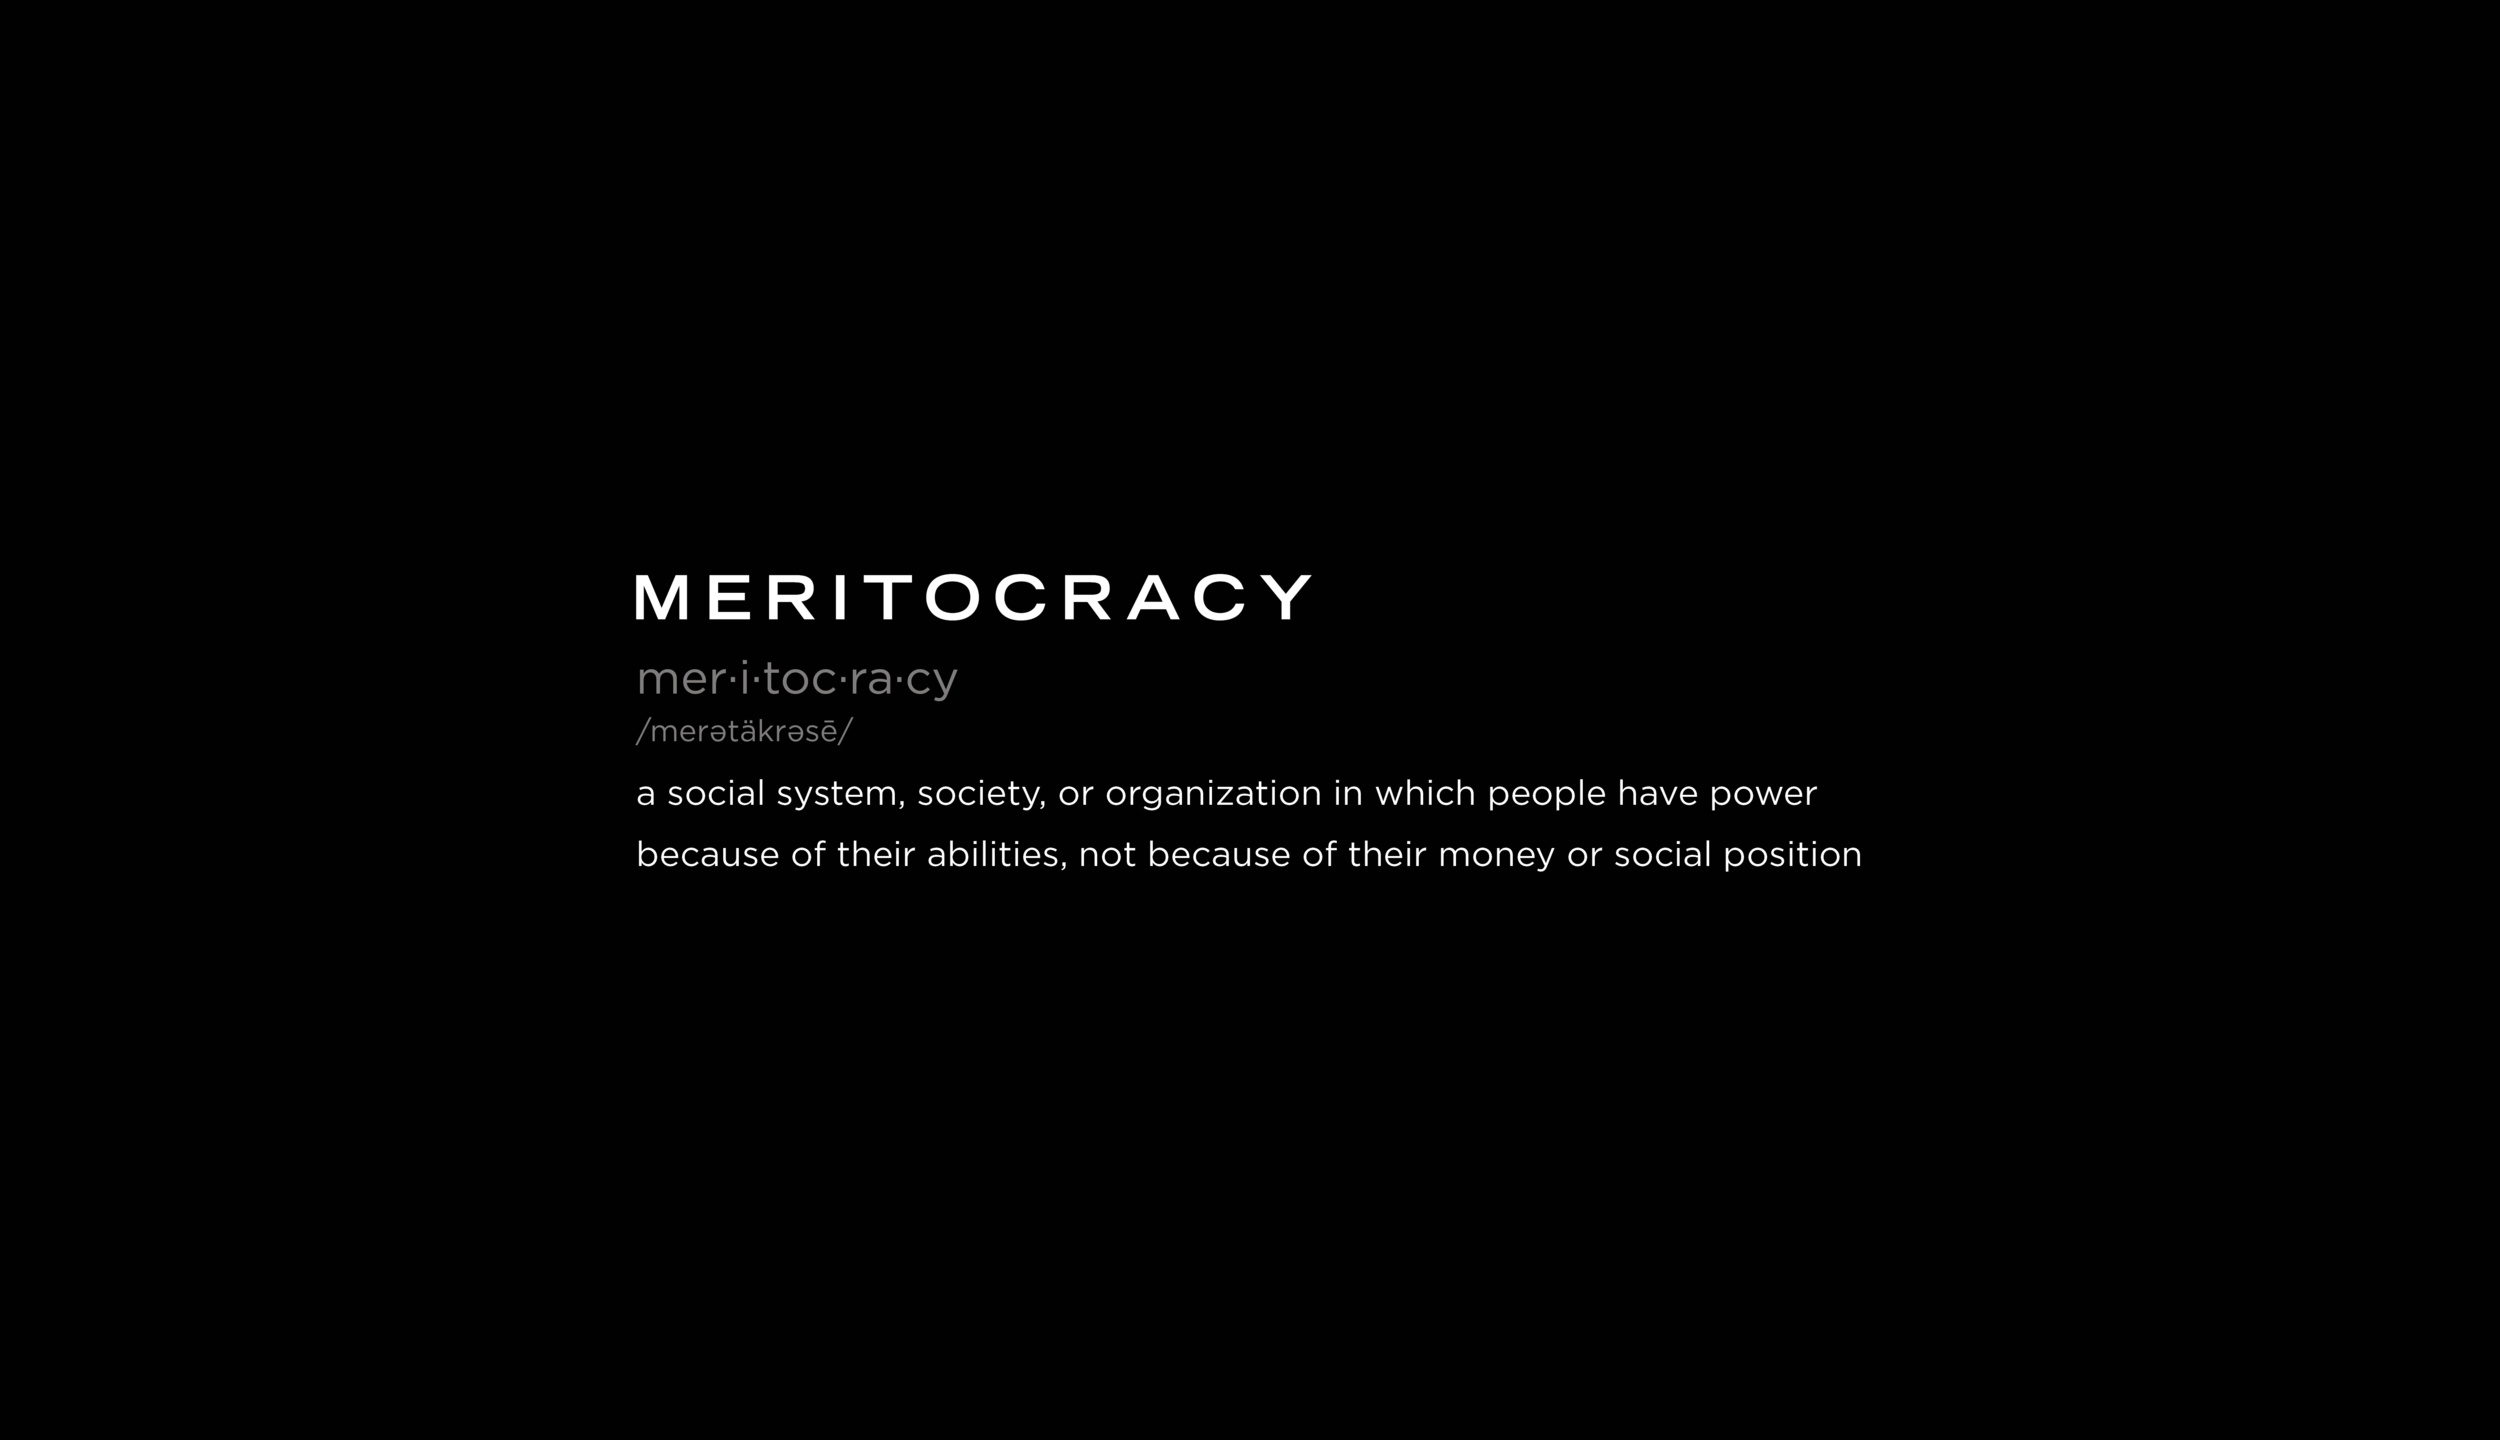 Meritocracy-SiteDesign.png